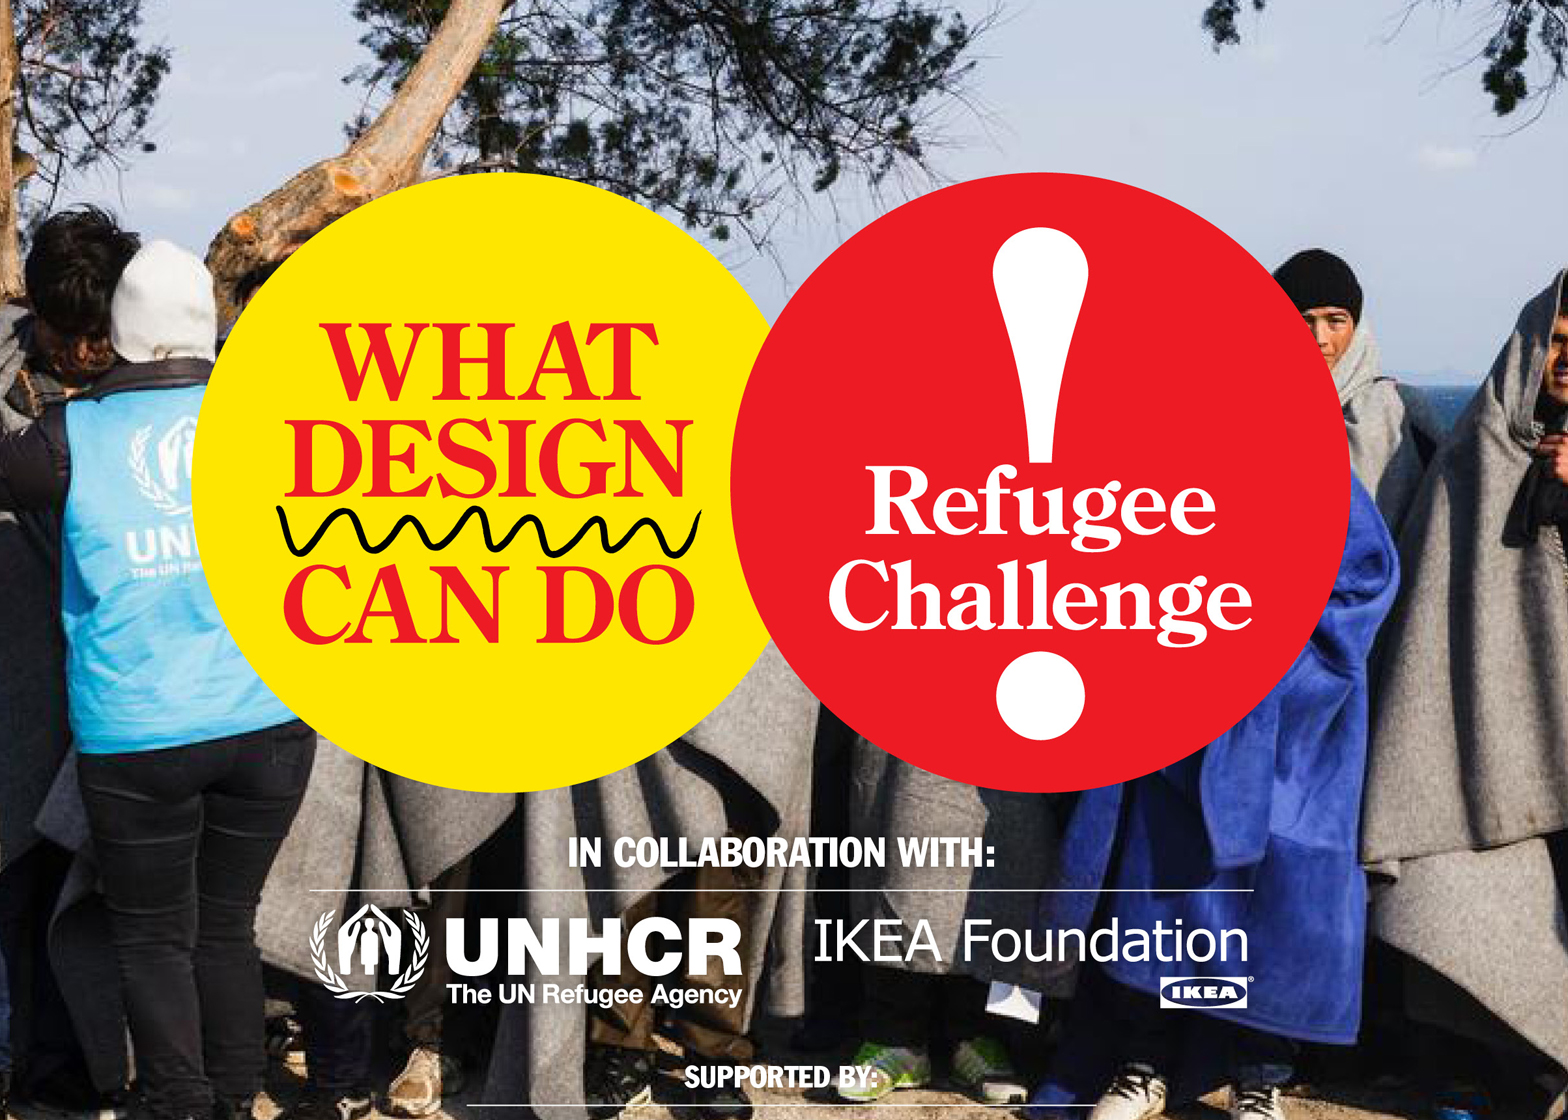 What Design Can Do refugee challenge quote